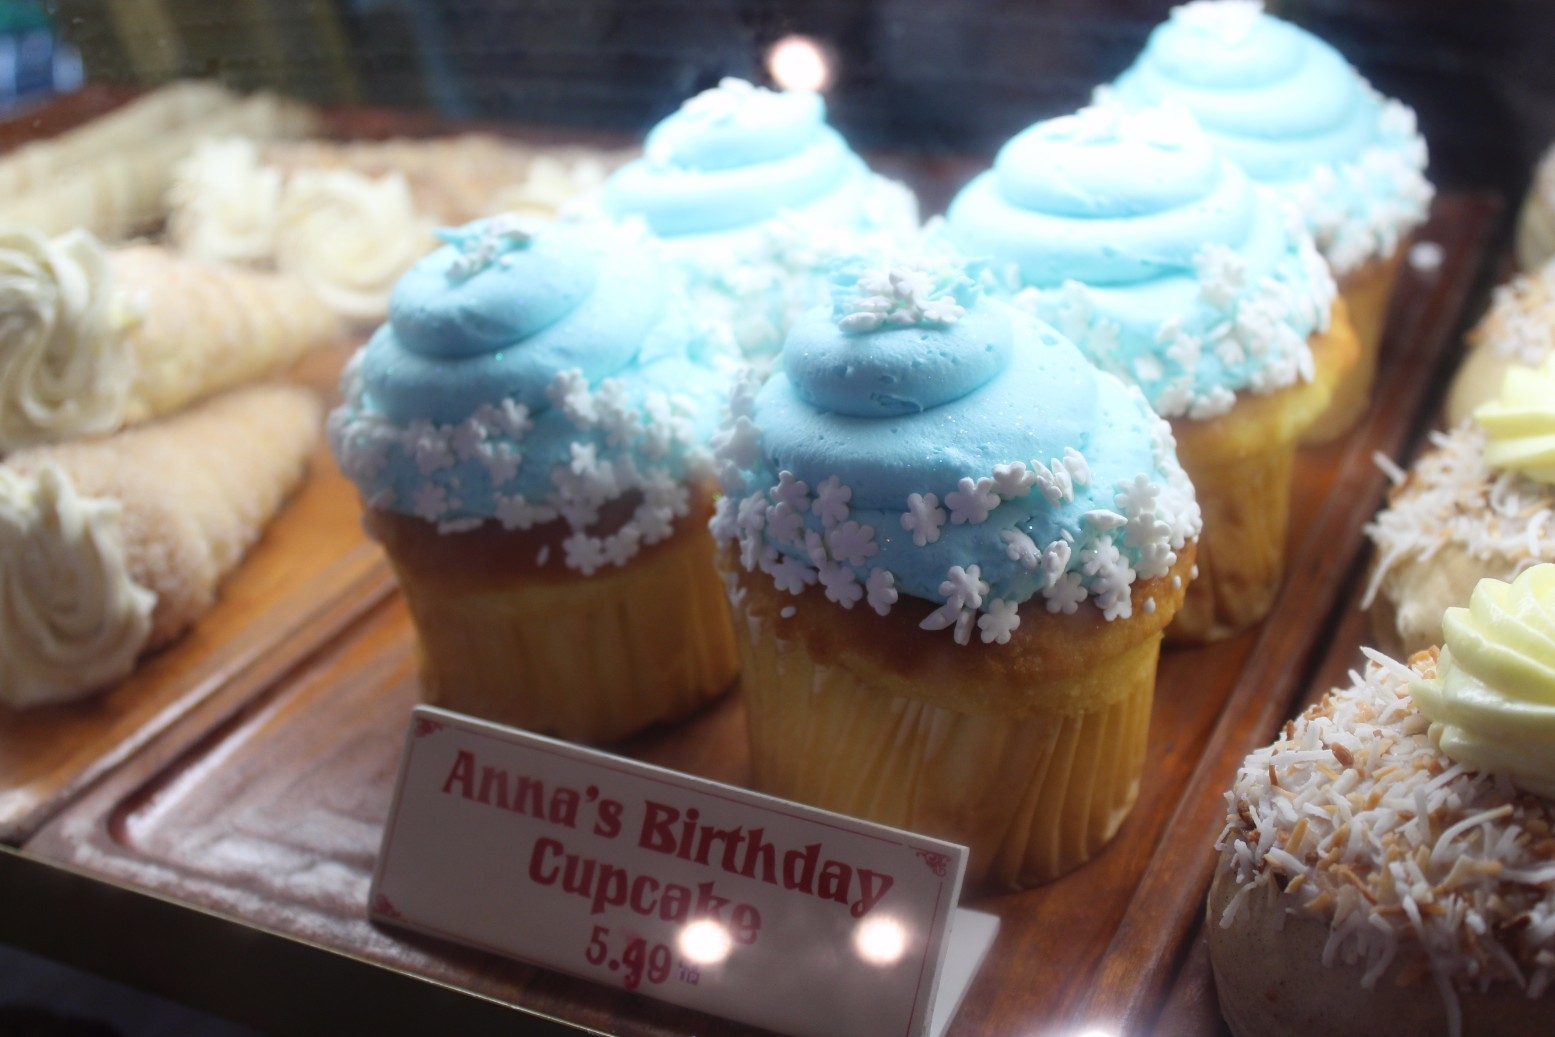 Anna\'s birthday cupcake Norway Bakery Epcot (1)